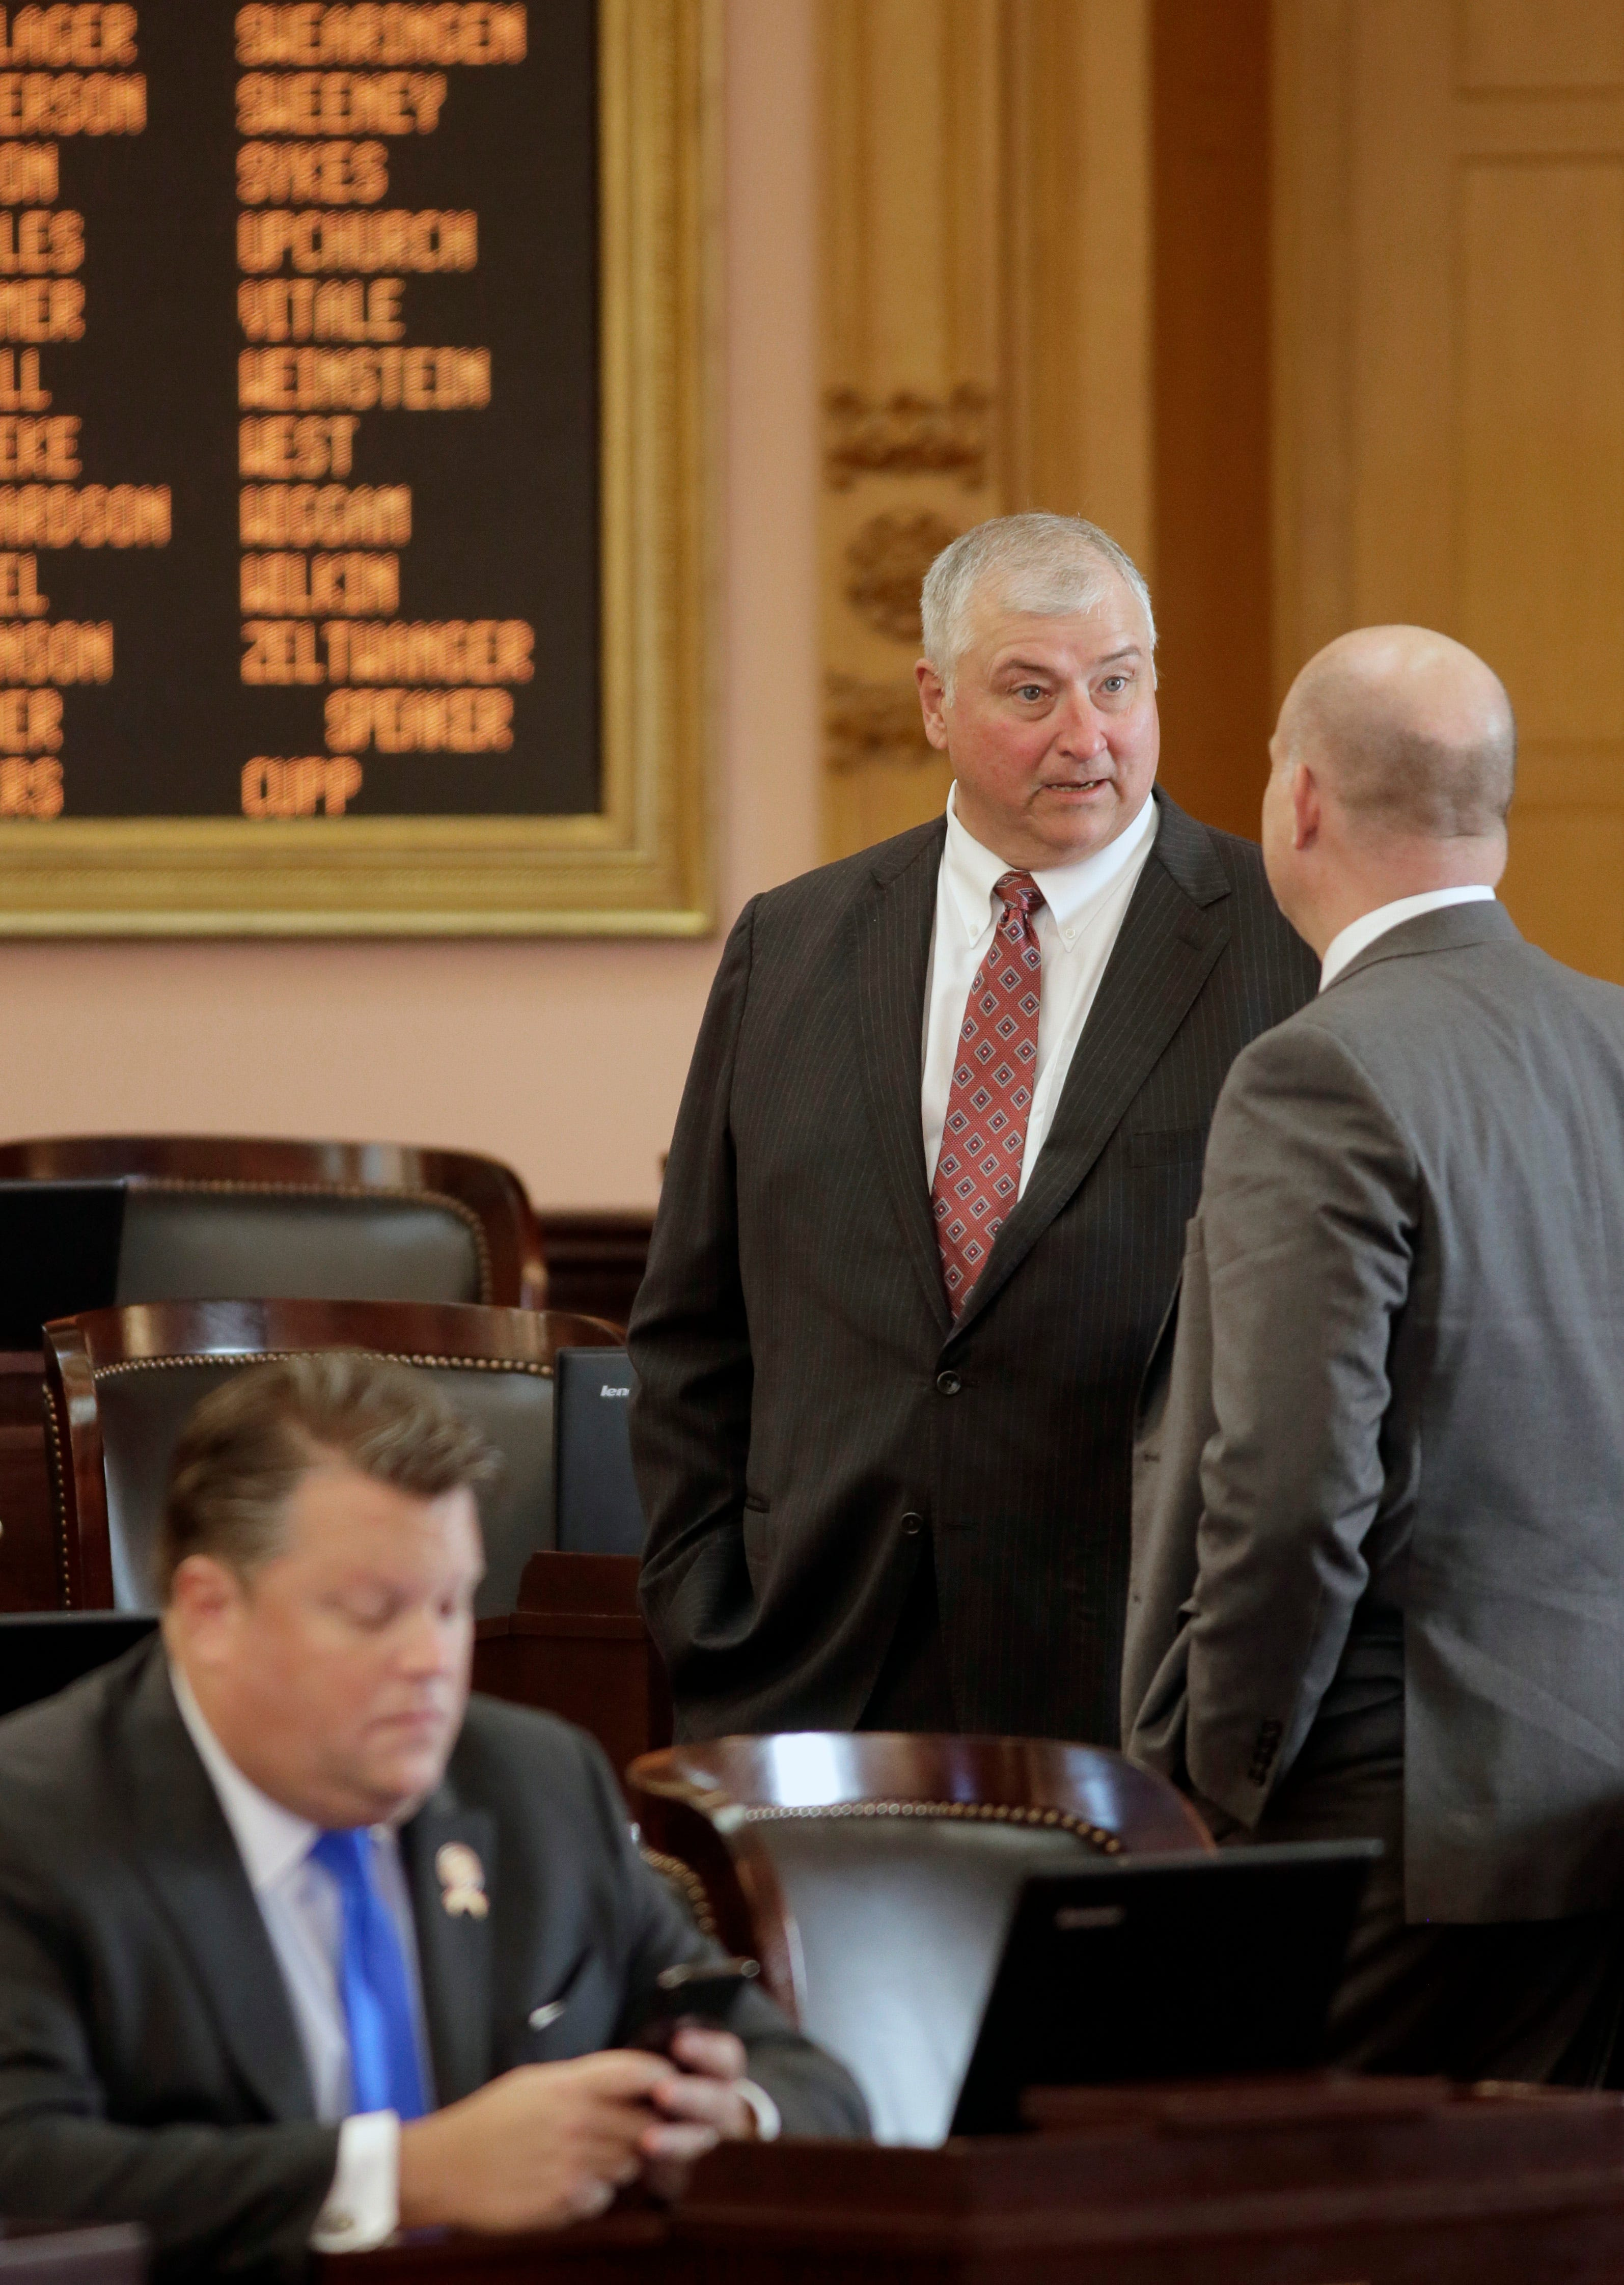 State Representative Larry Householder (Rep.) speaks with another member inside the House Chambers at the Ohio Statehouse before a session began on Wednesday, November 18, 2020.